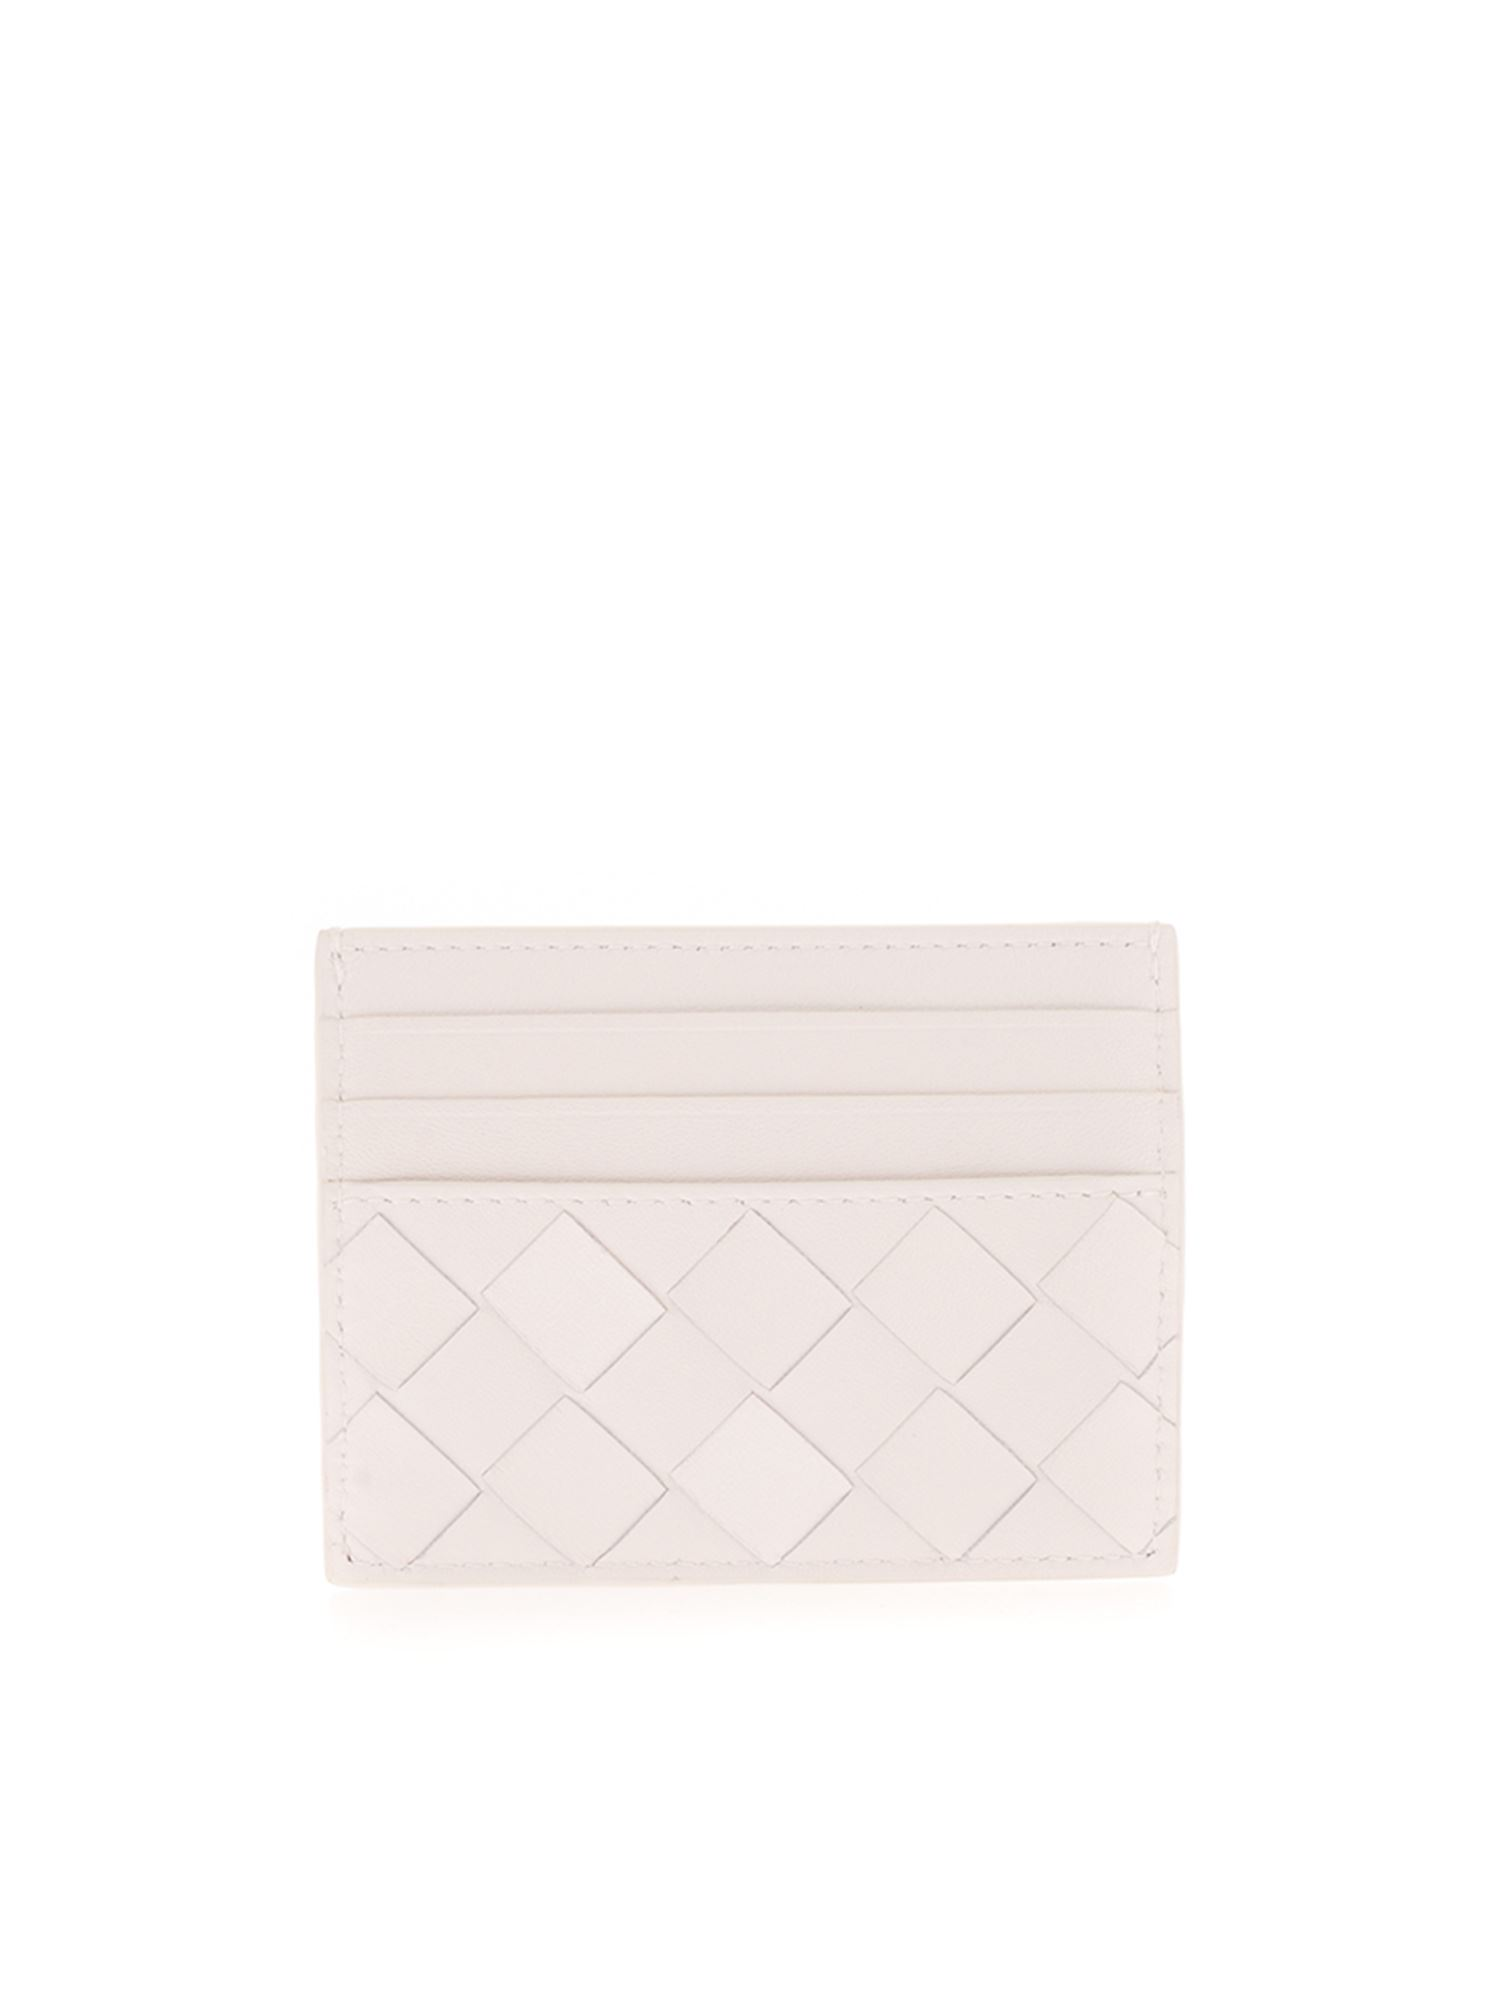 Bottega Veneta WOVEN CARD HOLDER IN WHITE